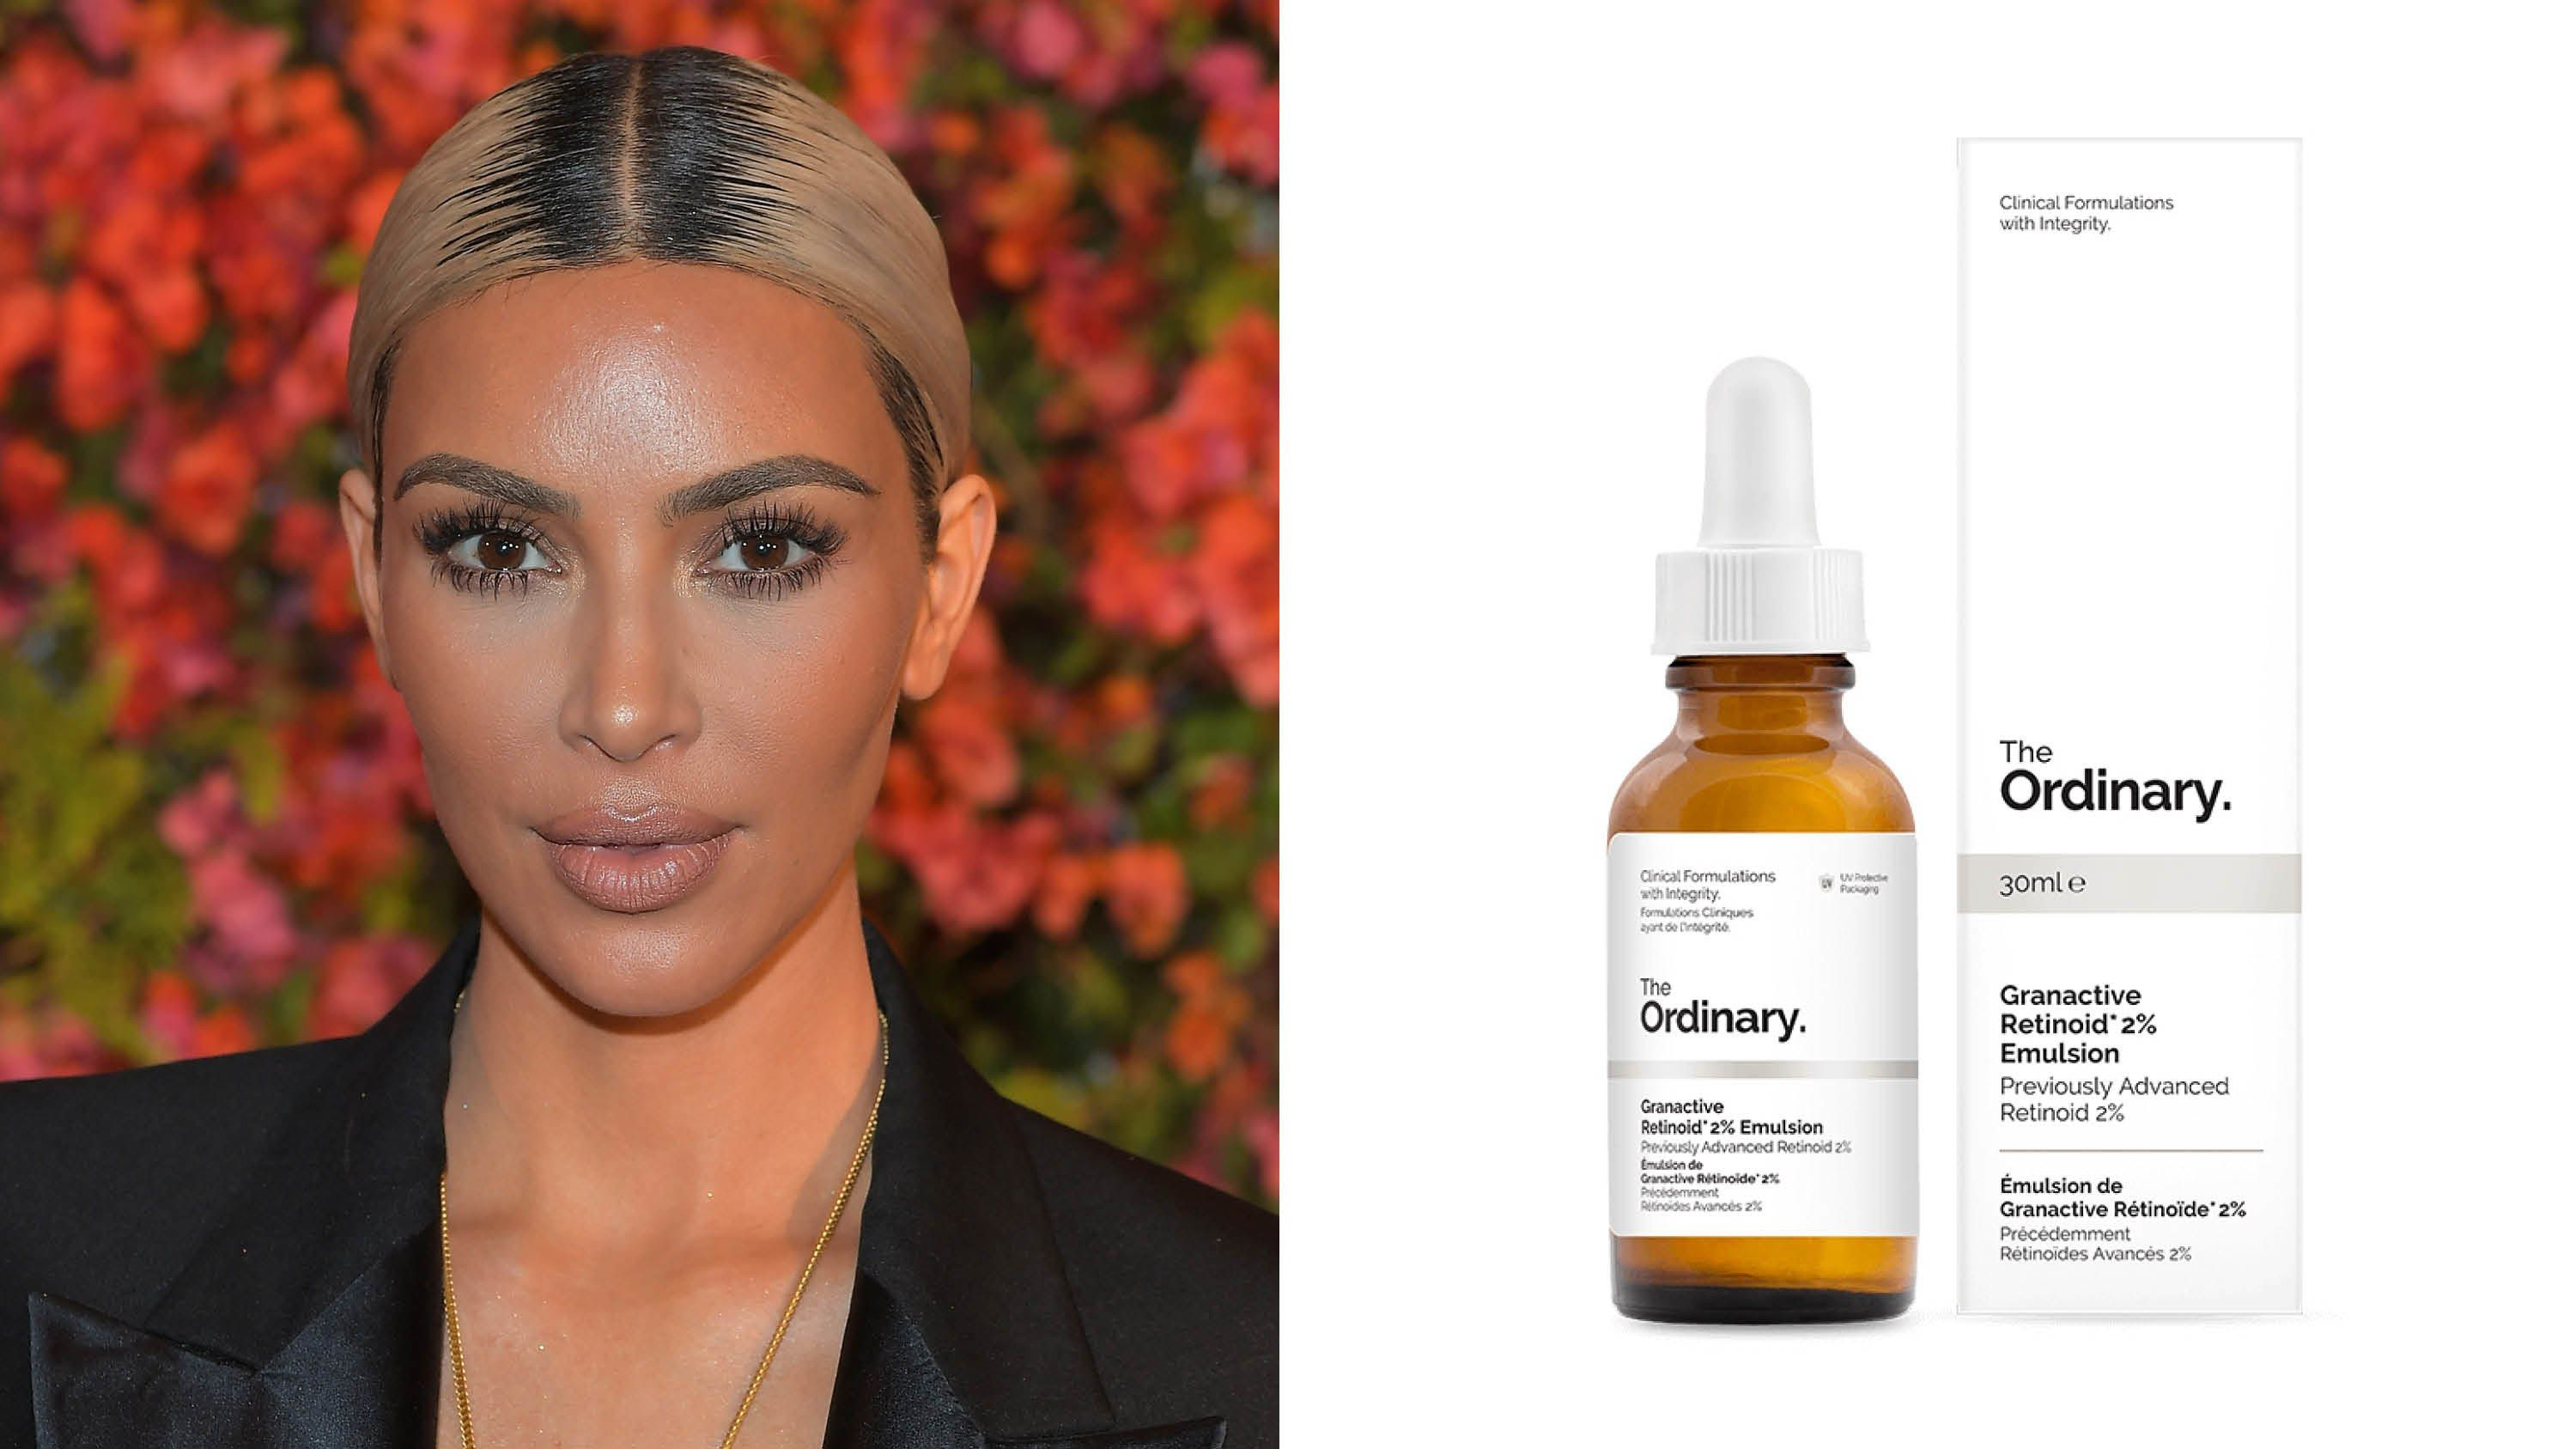 Kim Kardashian West shared some of her favorite skin-care products